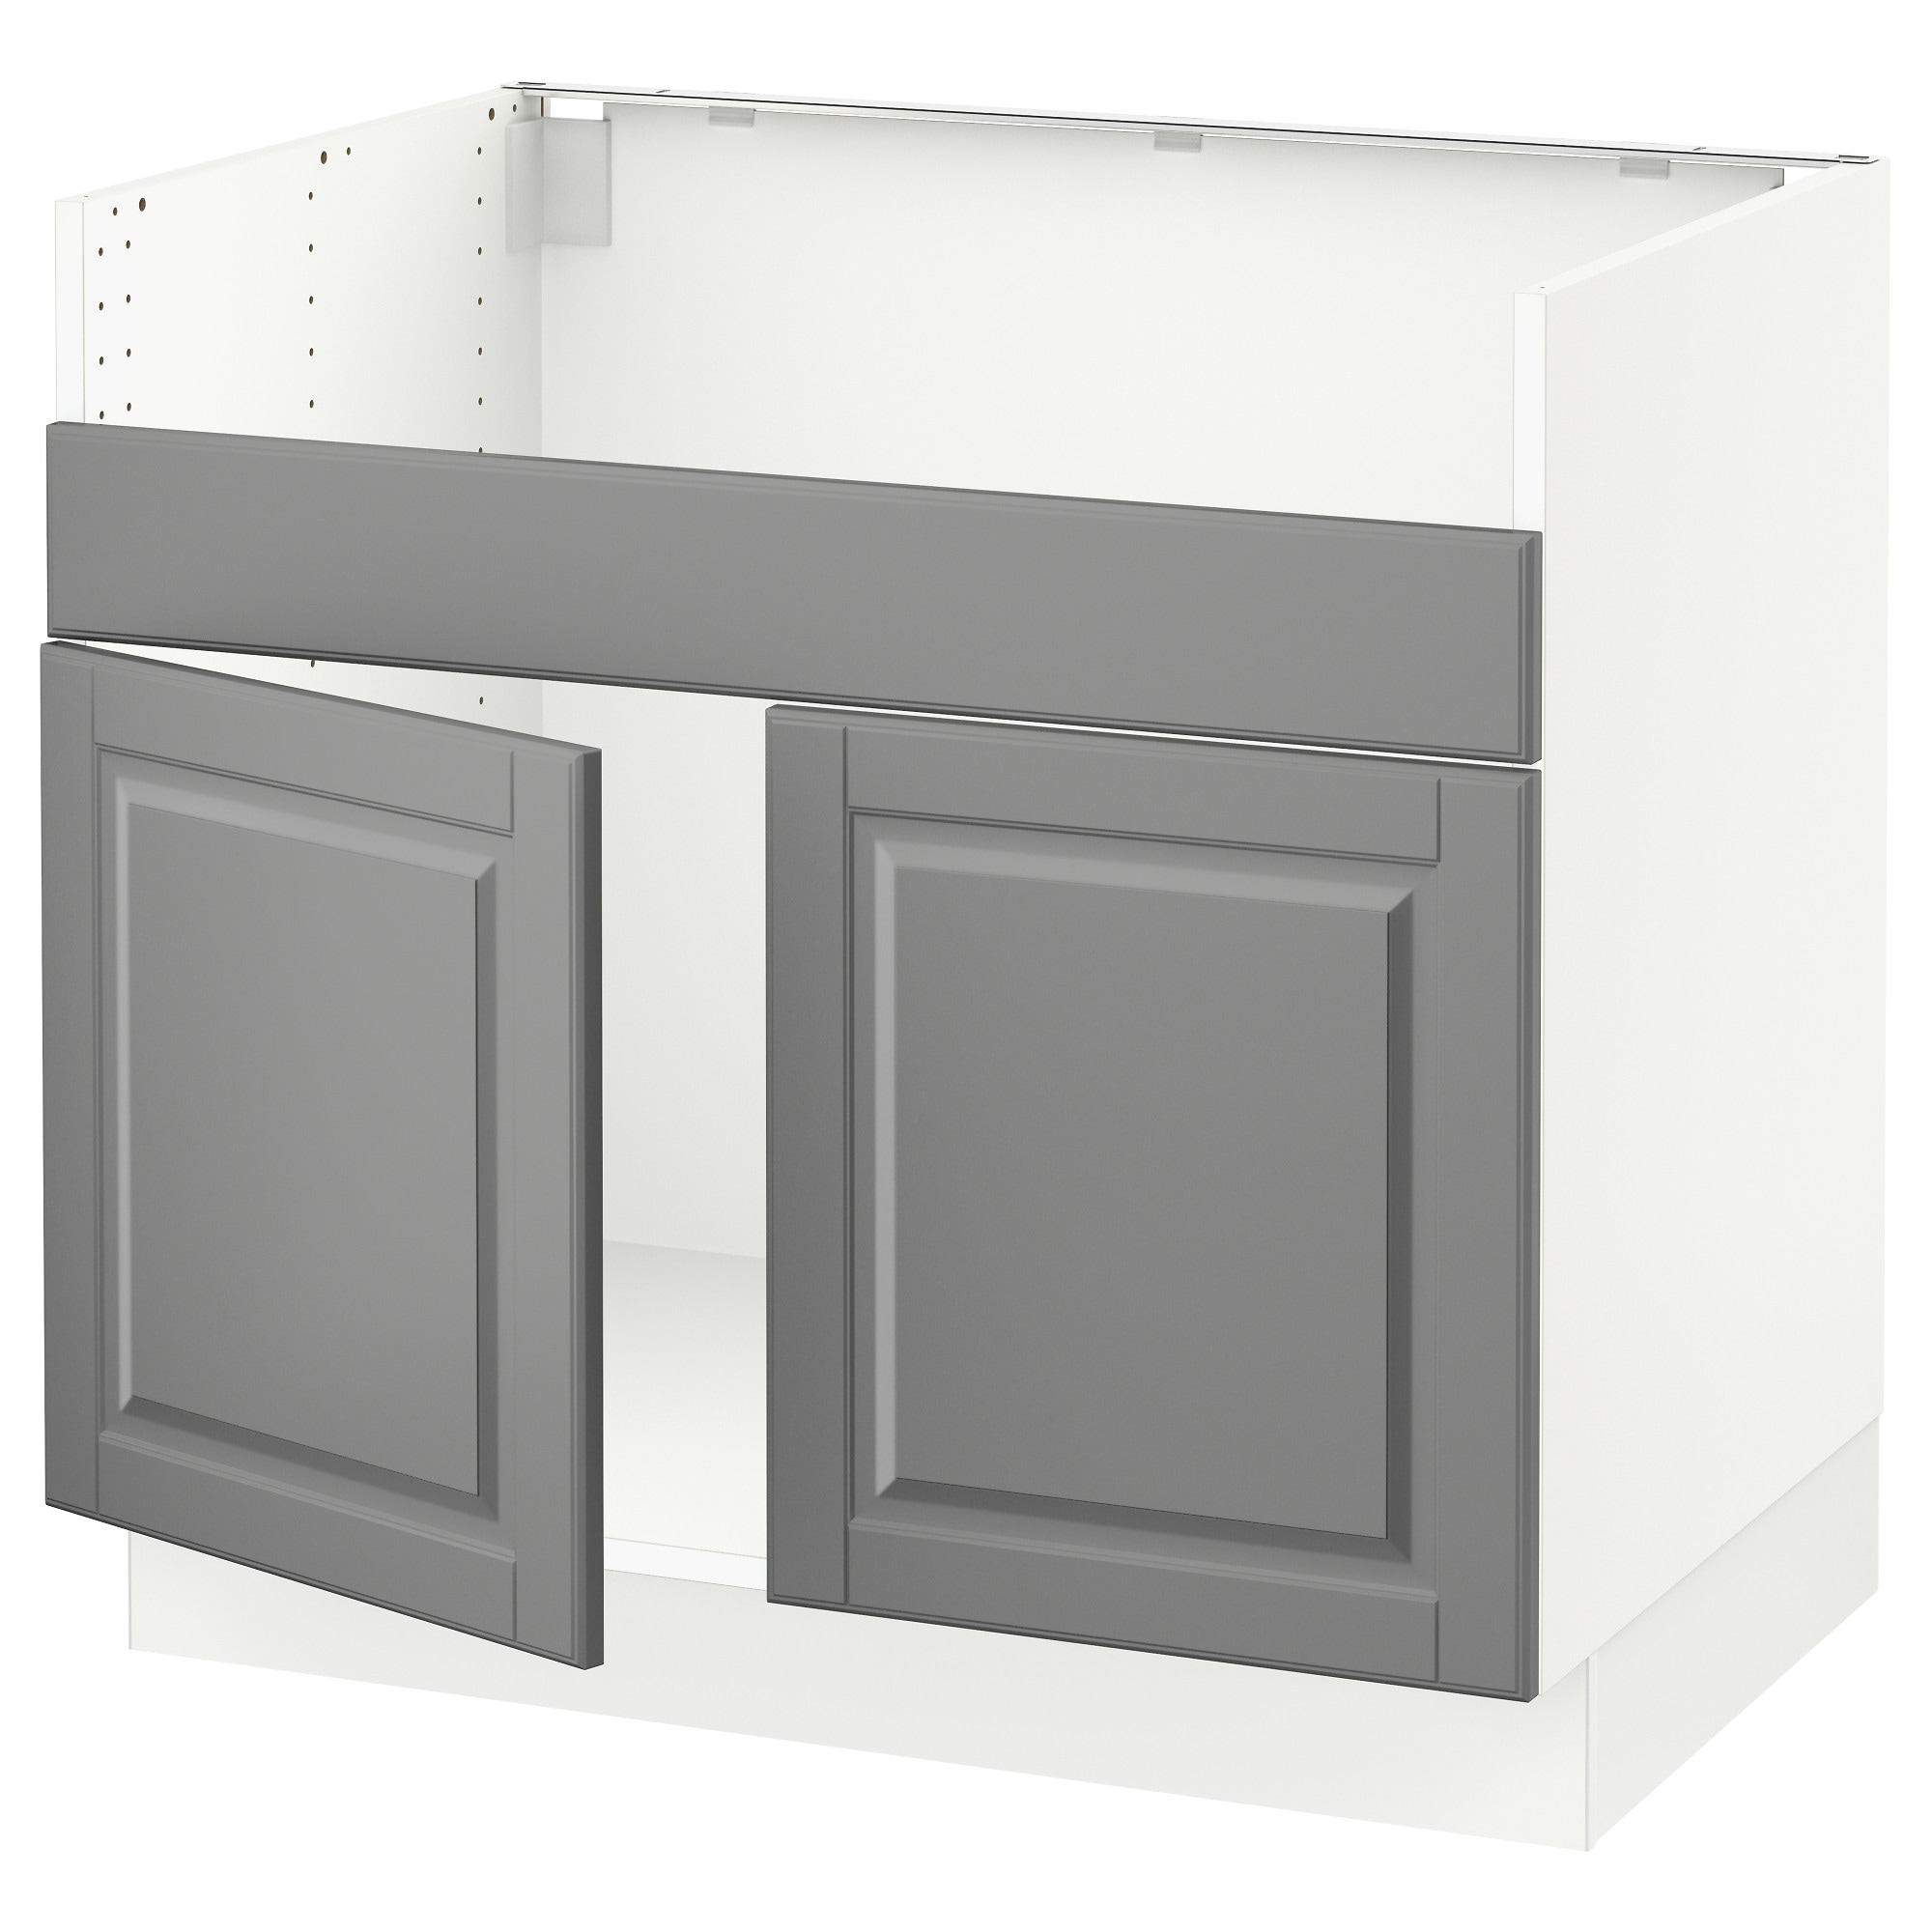 base cabinets - sektion system - ikea